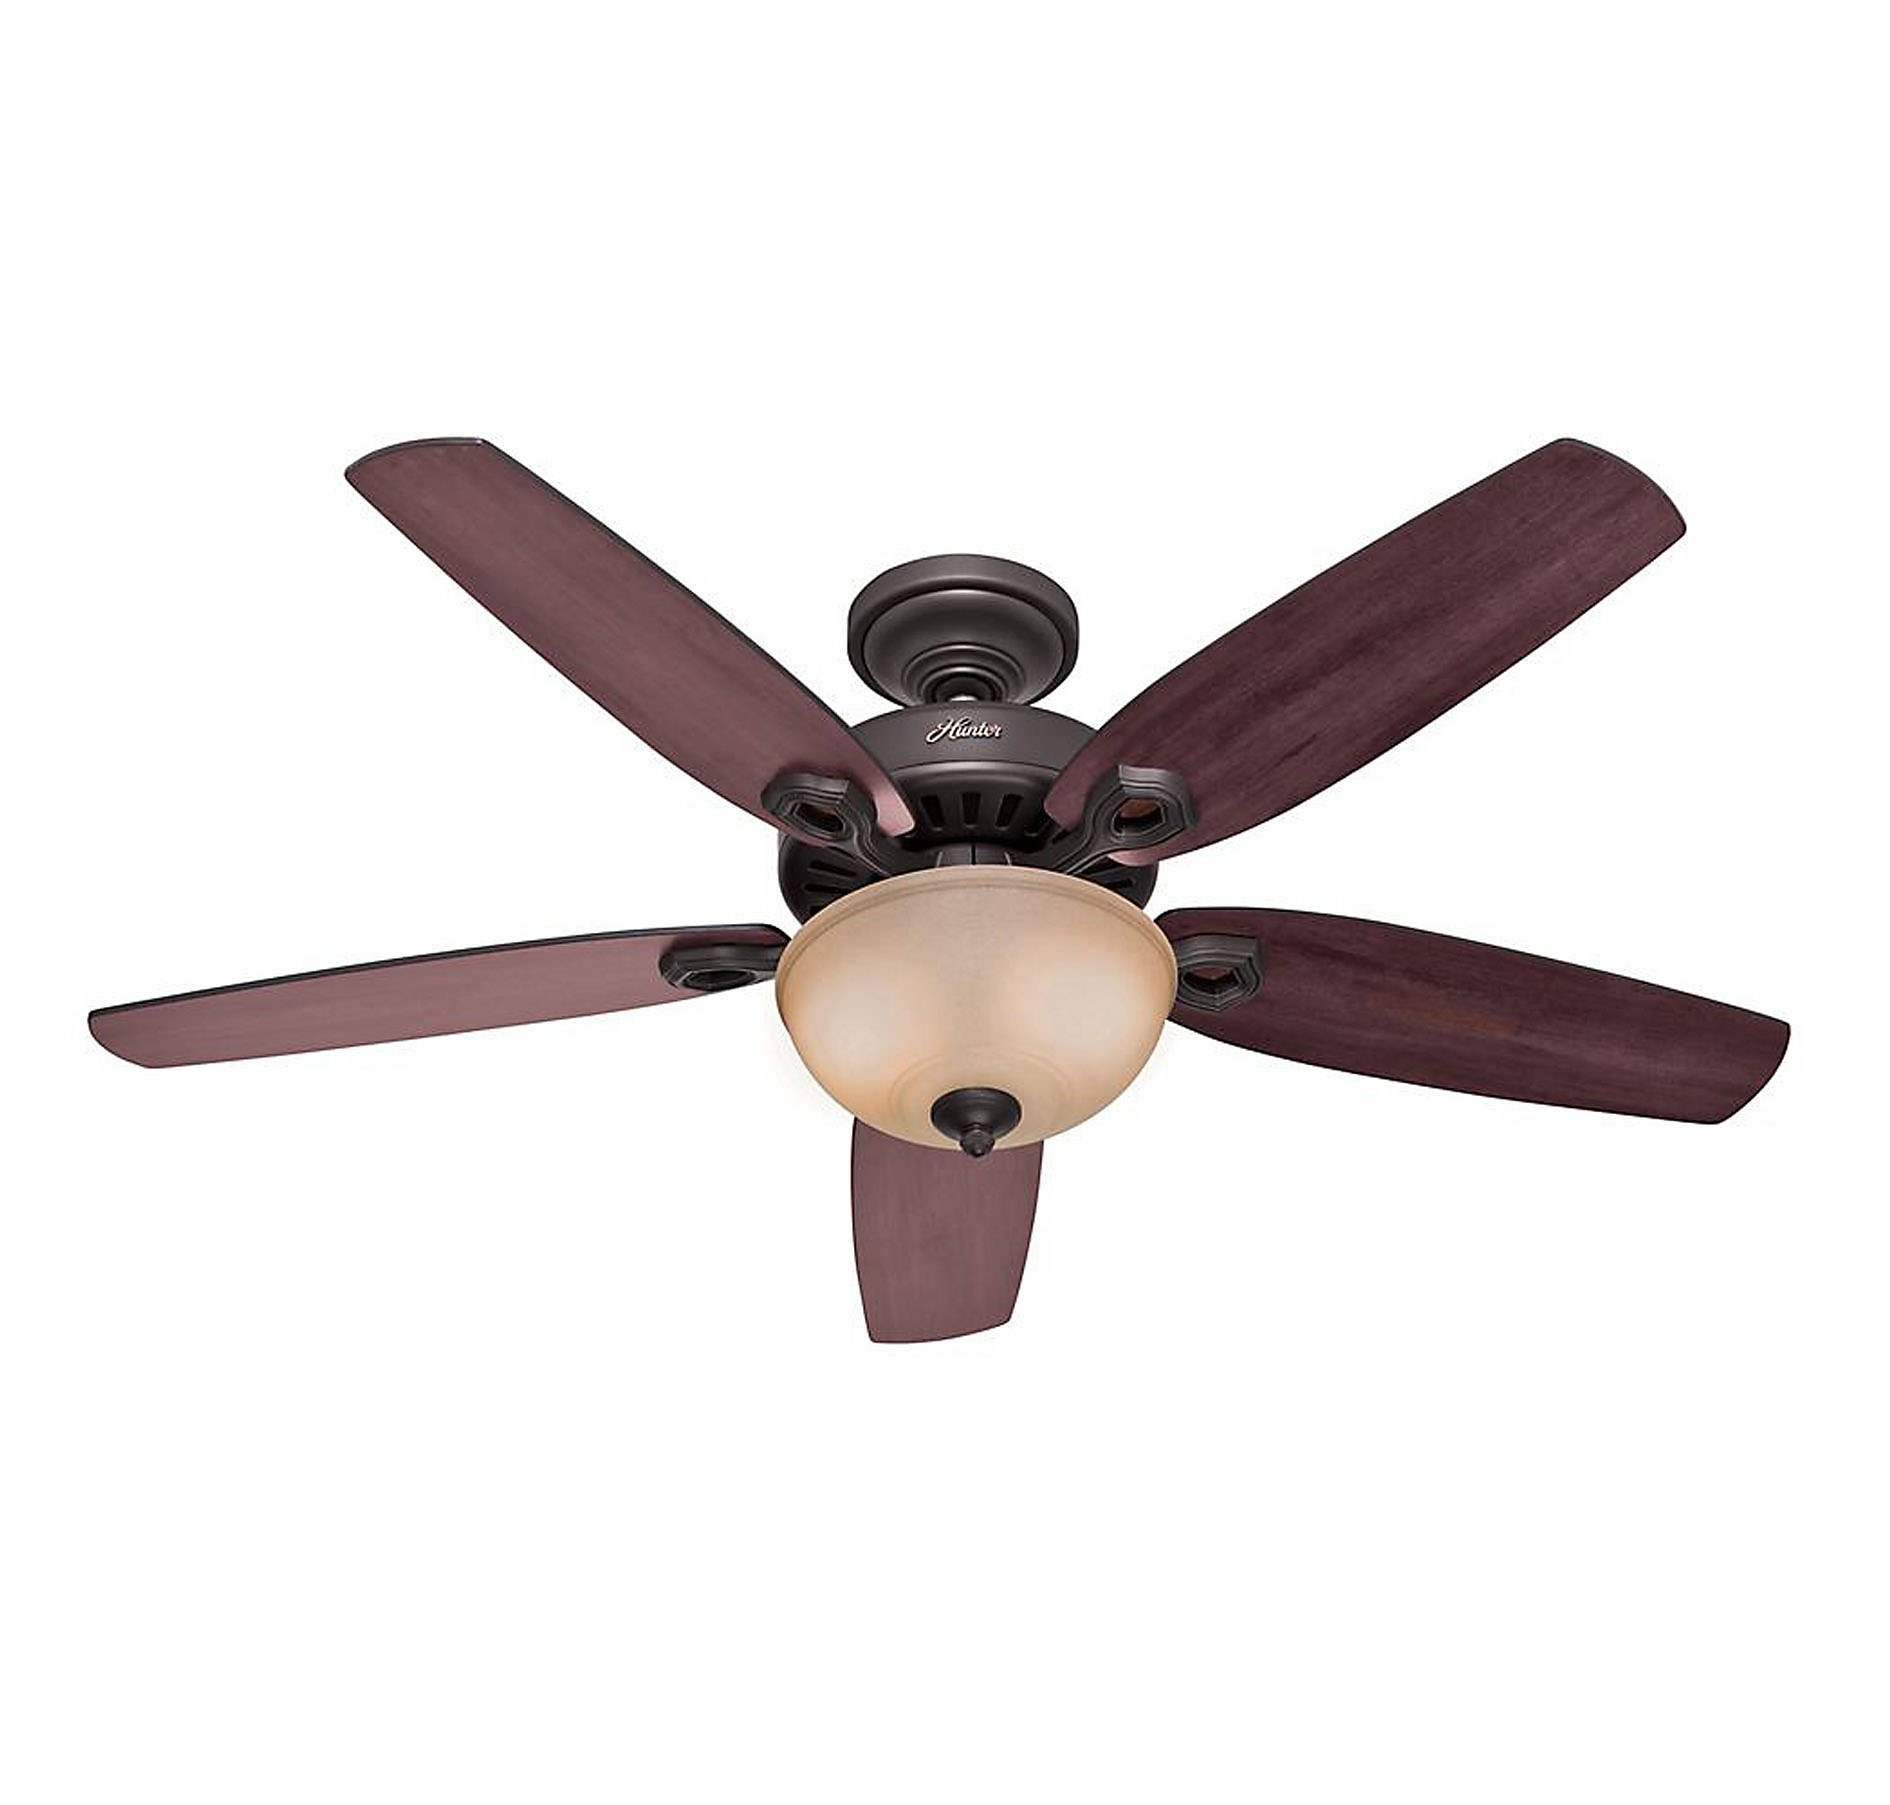 Hunter 53091 Builder Deluxe 5-Blade Single Light Ceiling Fan with Brazilian Cherry/Stained Oak Blades and Piped Toffee Glass Light Bowl, 52-Inch, New Bronze by Hunter Fan Company